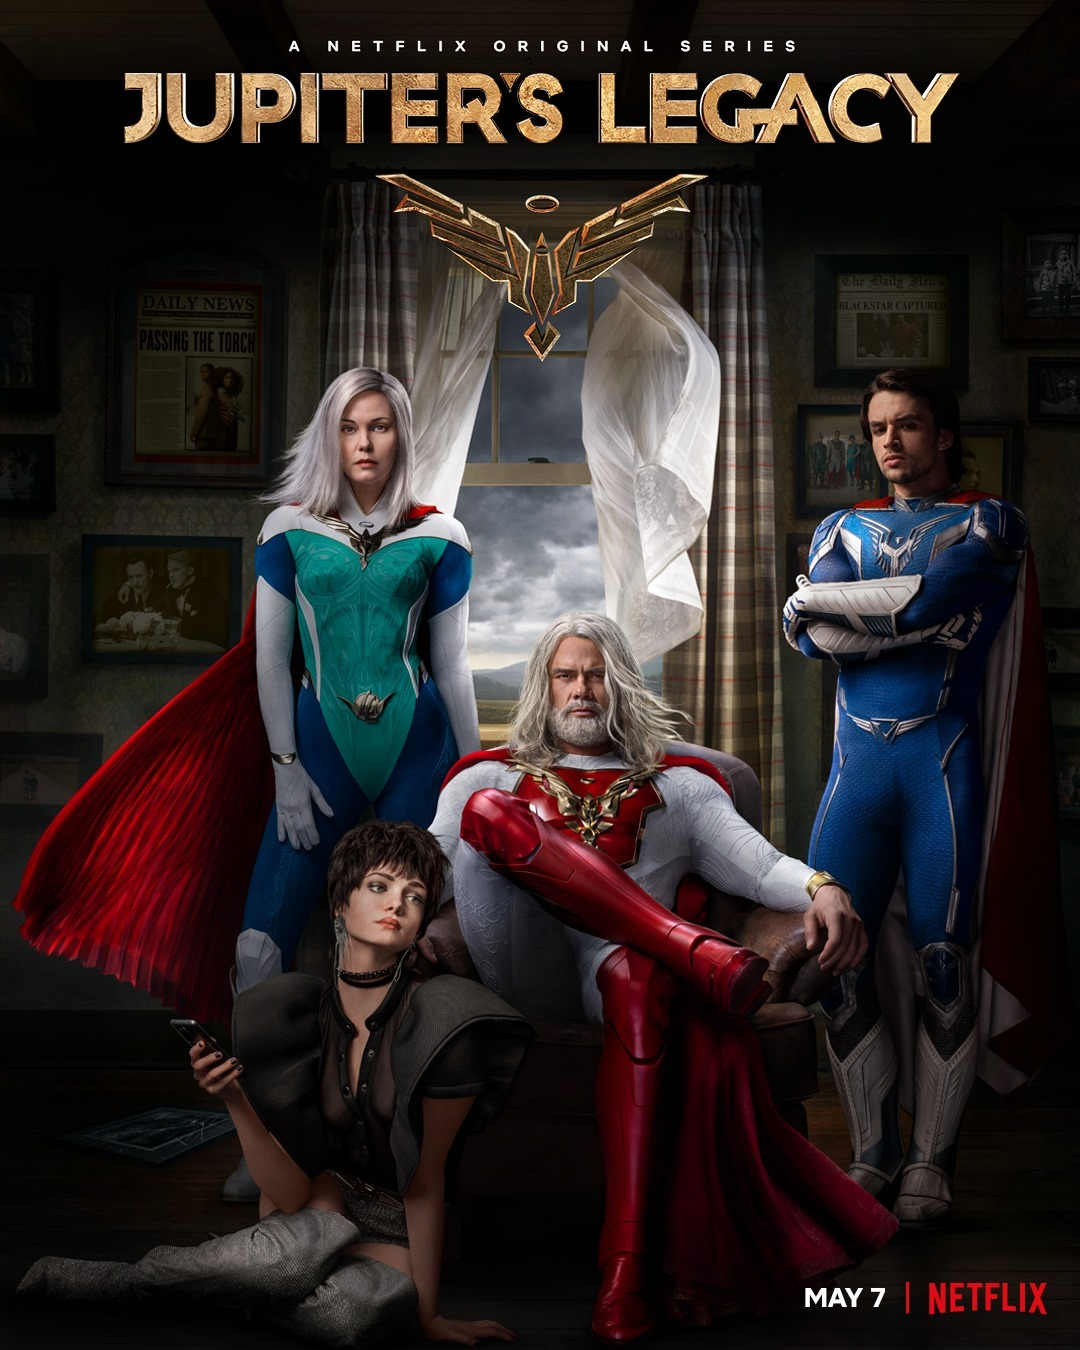 The first generation of superheroes has kept the world safe for nearly a century. Now their children must live up to their legacy in an epic drama that spans decades and navigates the dynamics of family, power and loyalty.